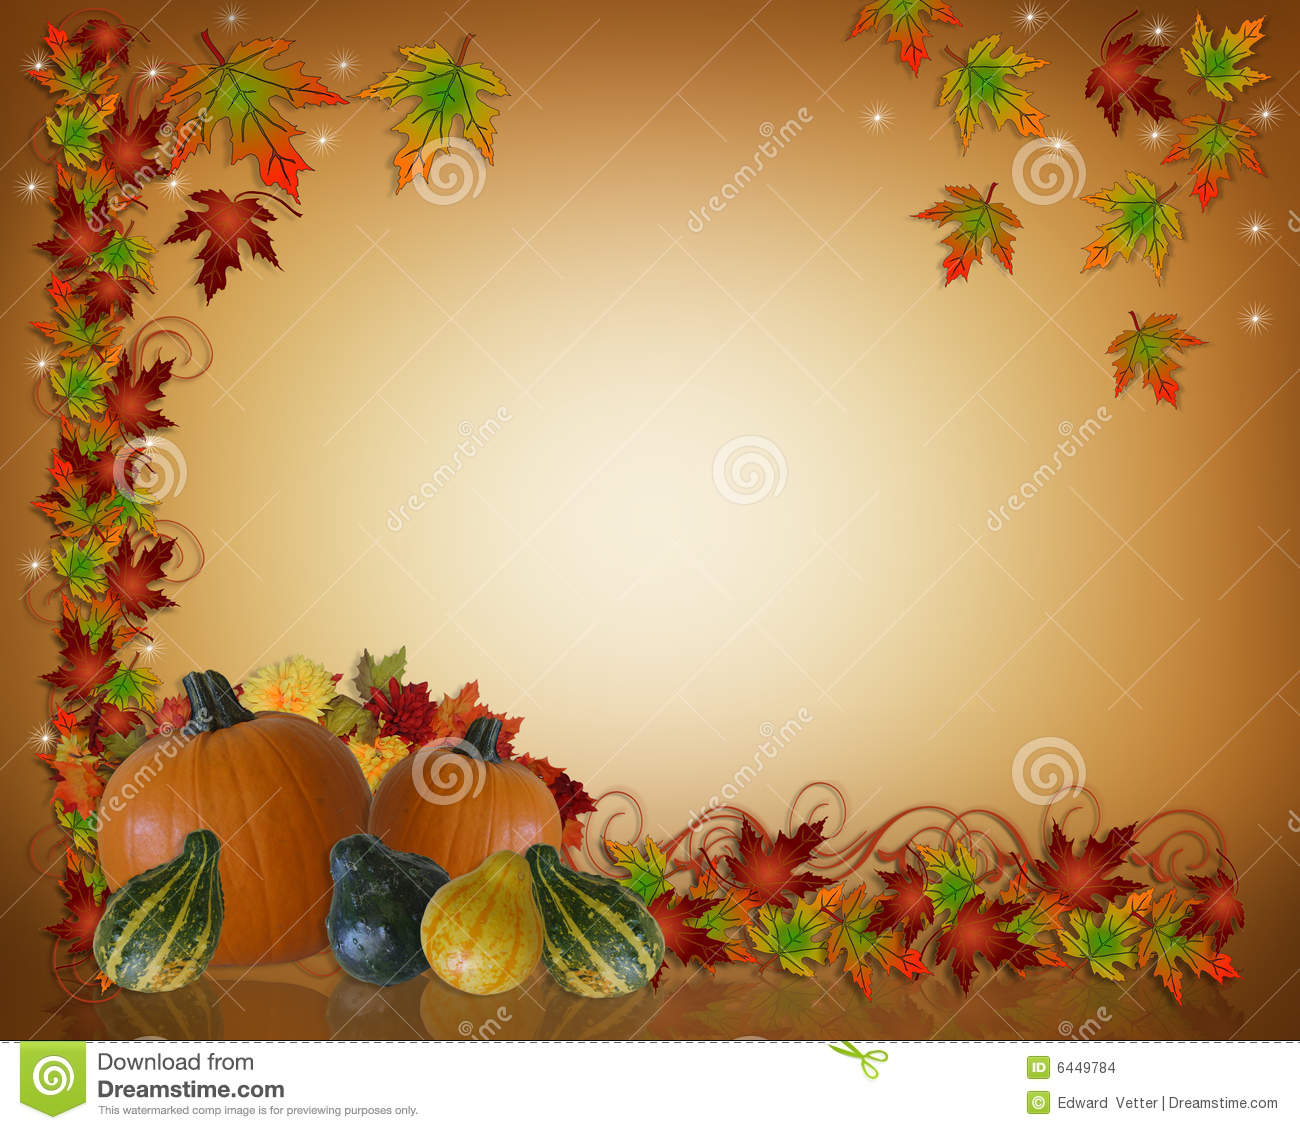 Christian Wallpaper Fall Happy Birthday Thanksgiving Fall Autumn Background Stock Images Image